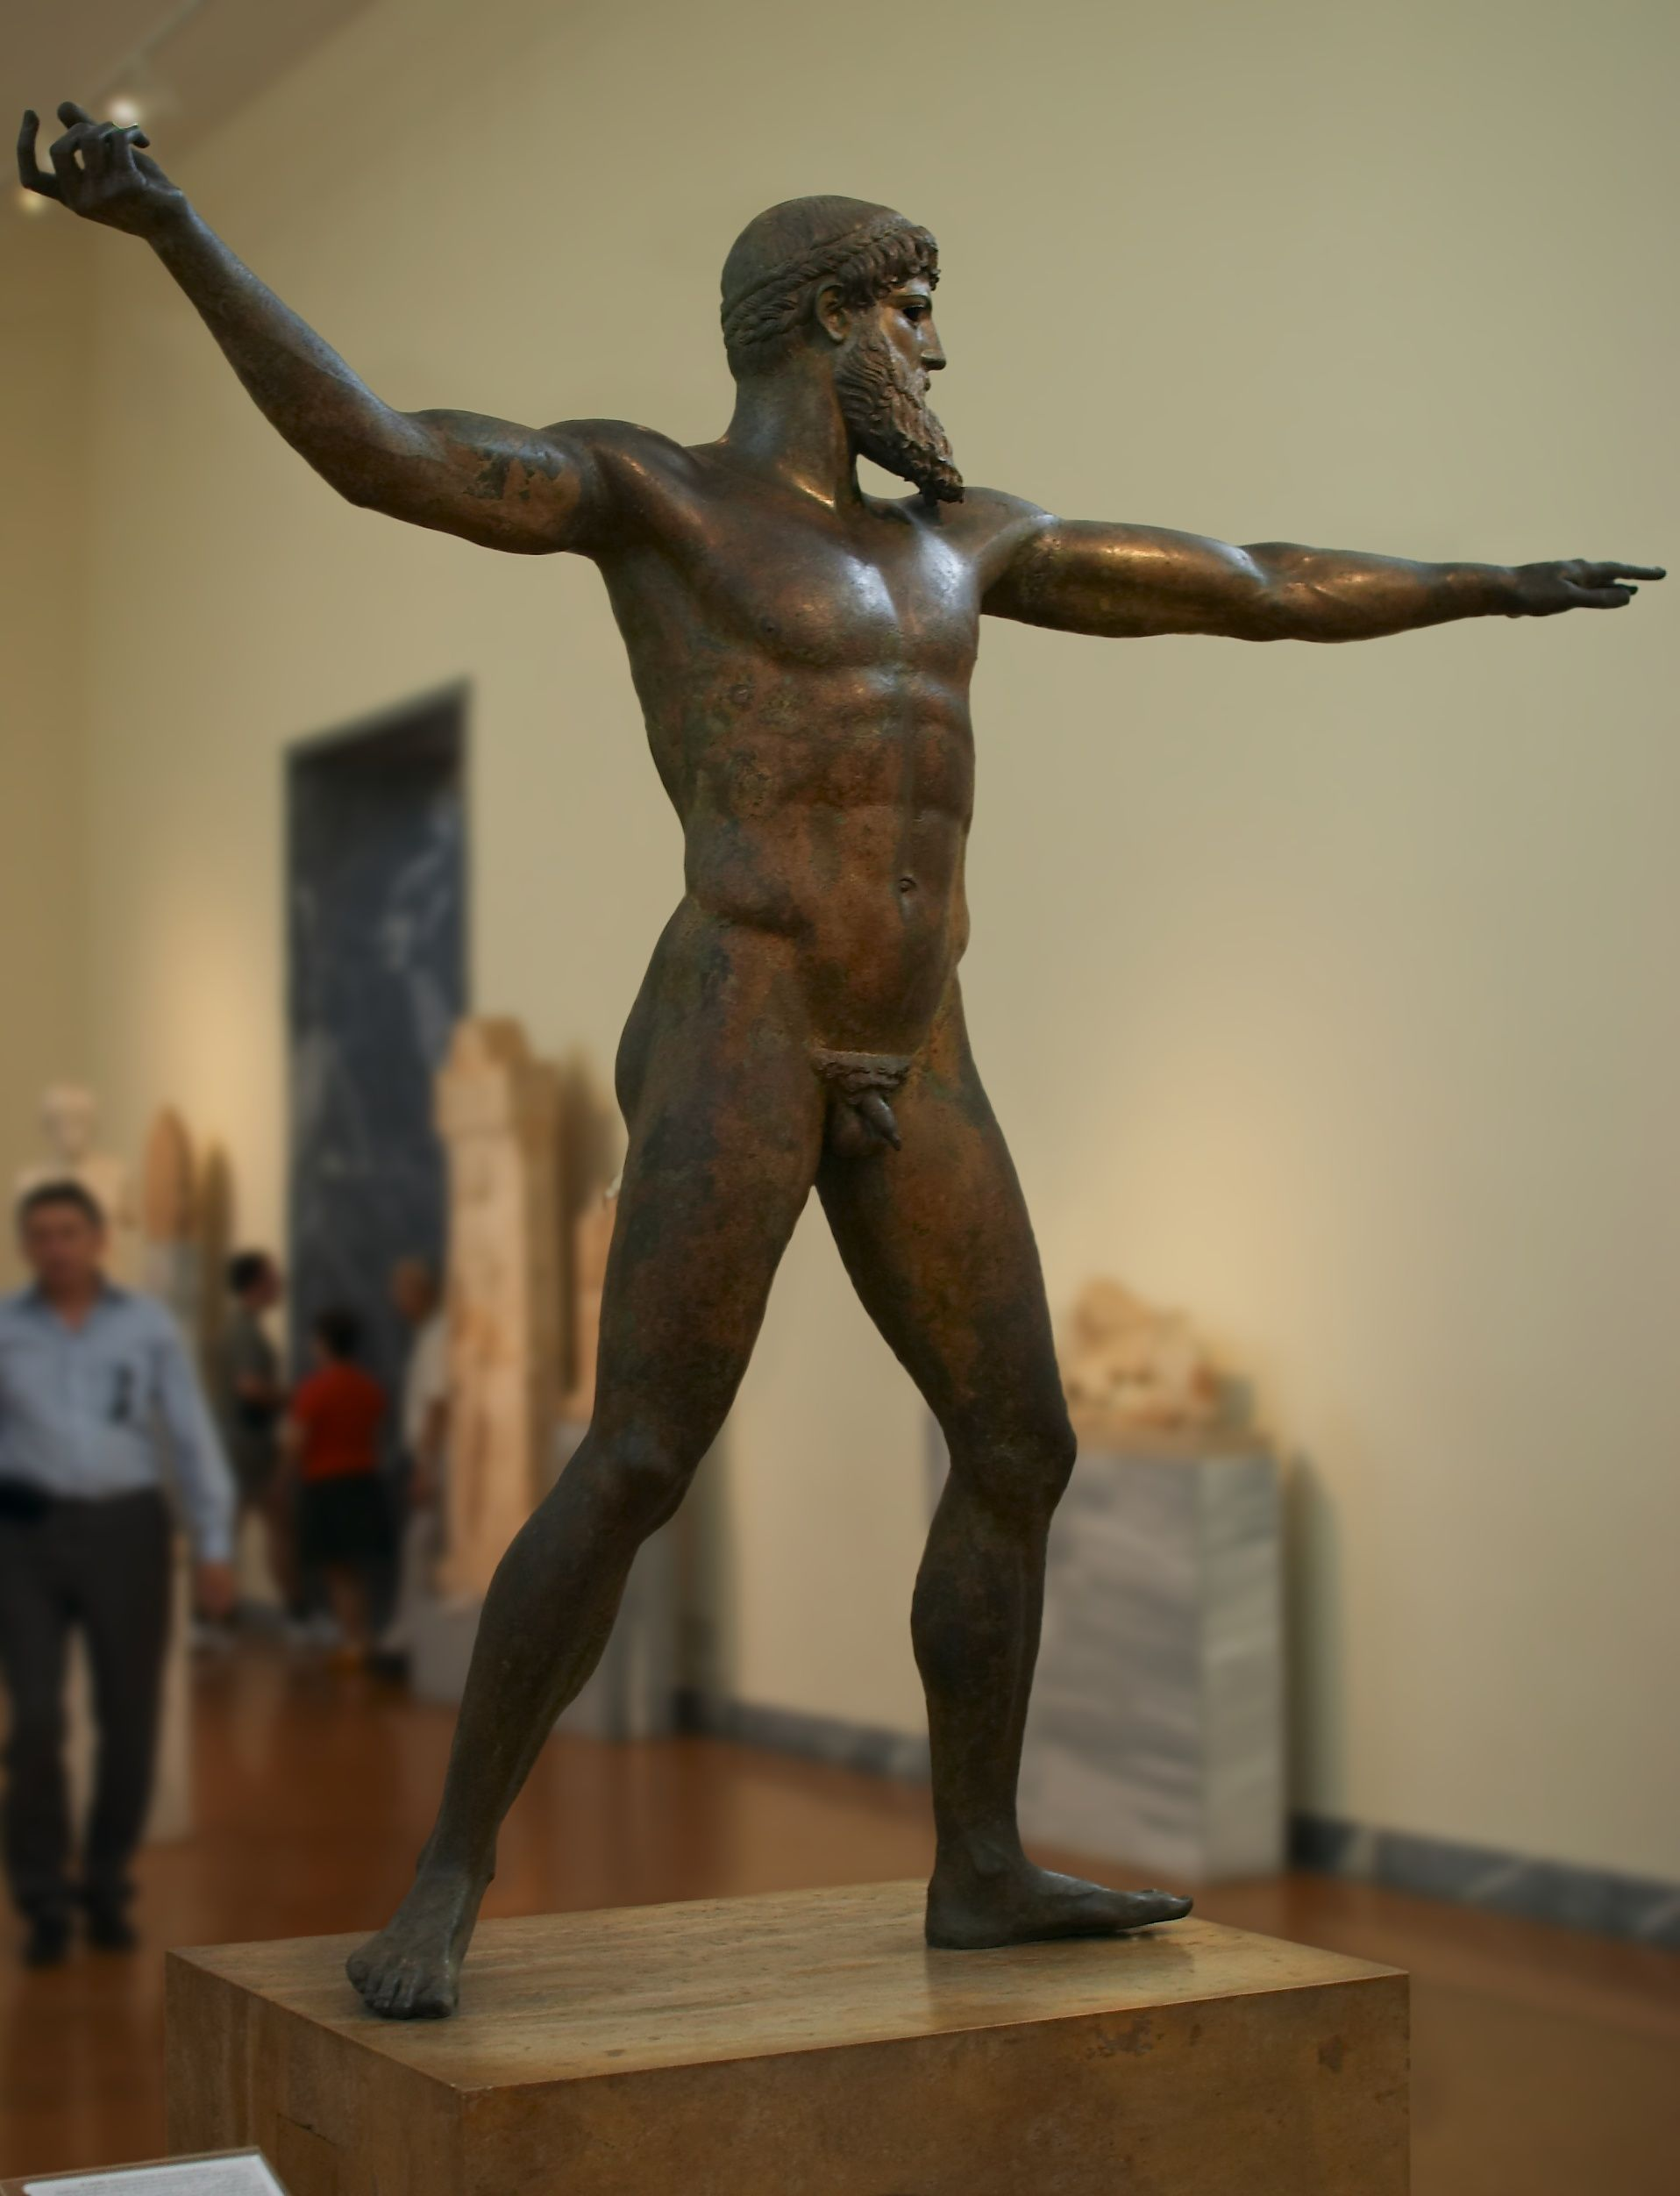 zeus or poseidon 460 450 bce bronze greek 6 10 art zeus or poseidon 460 450 bce bronze greek 6 10 art history museums posts and the two